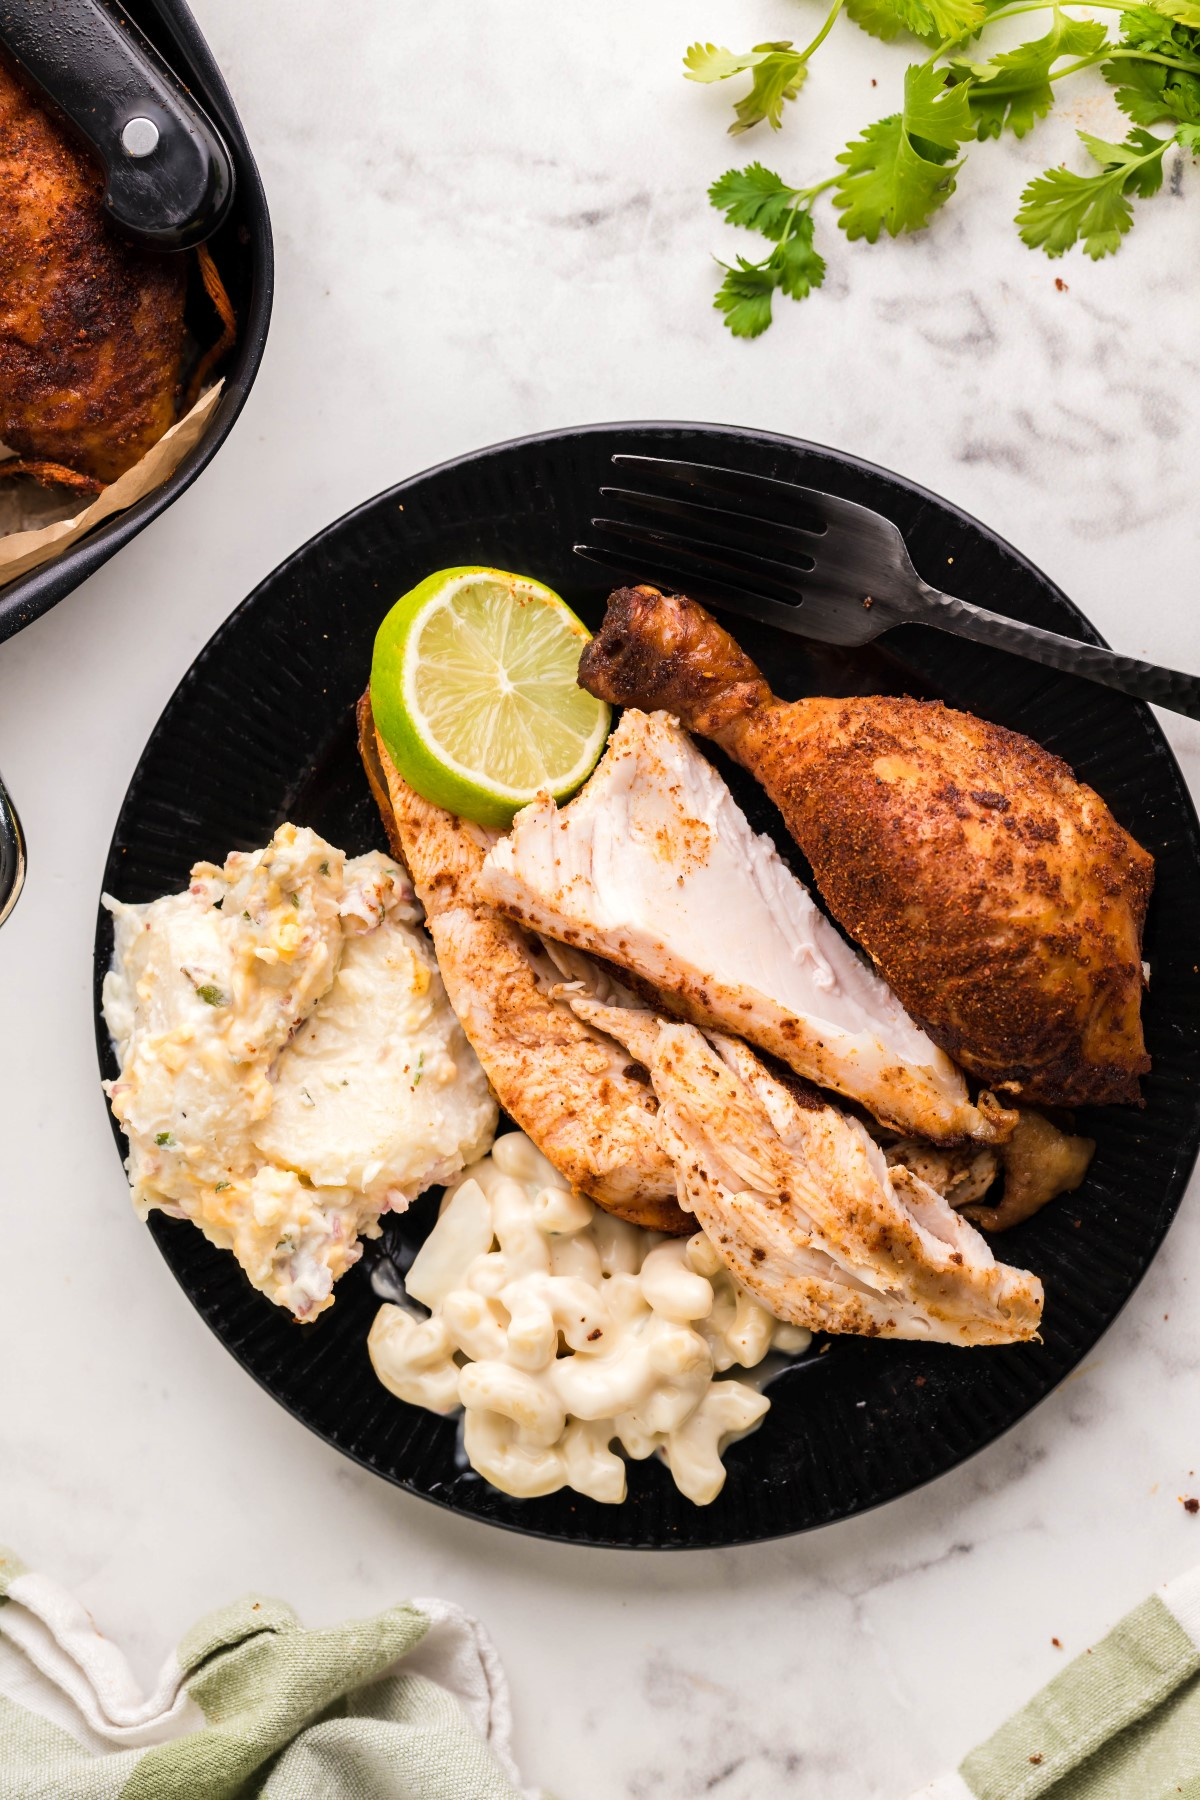 Smoked chicken drumstick and sliced breast meat on a black plate with potato salad and macaroni salad.